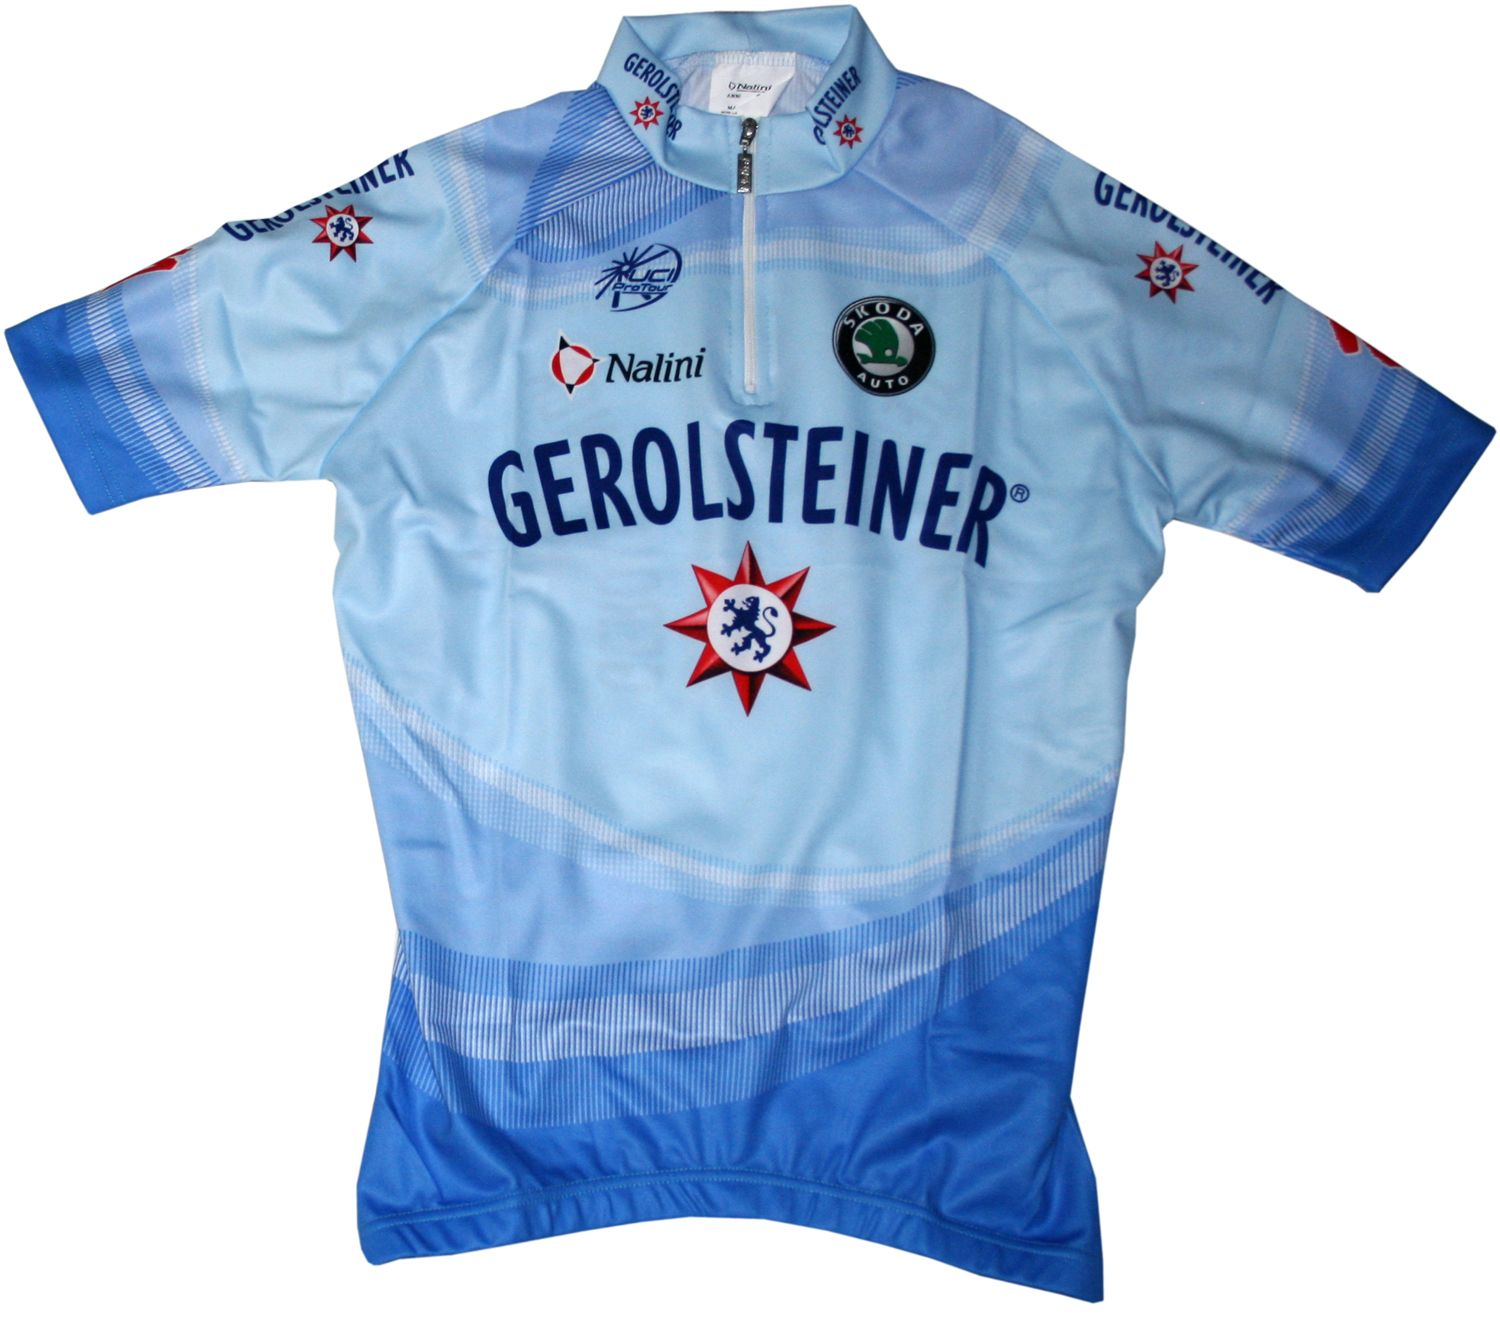 0648bd9c6 Gerolsteiner 2008 cycling set for kids (jersey